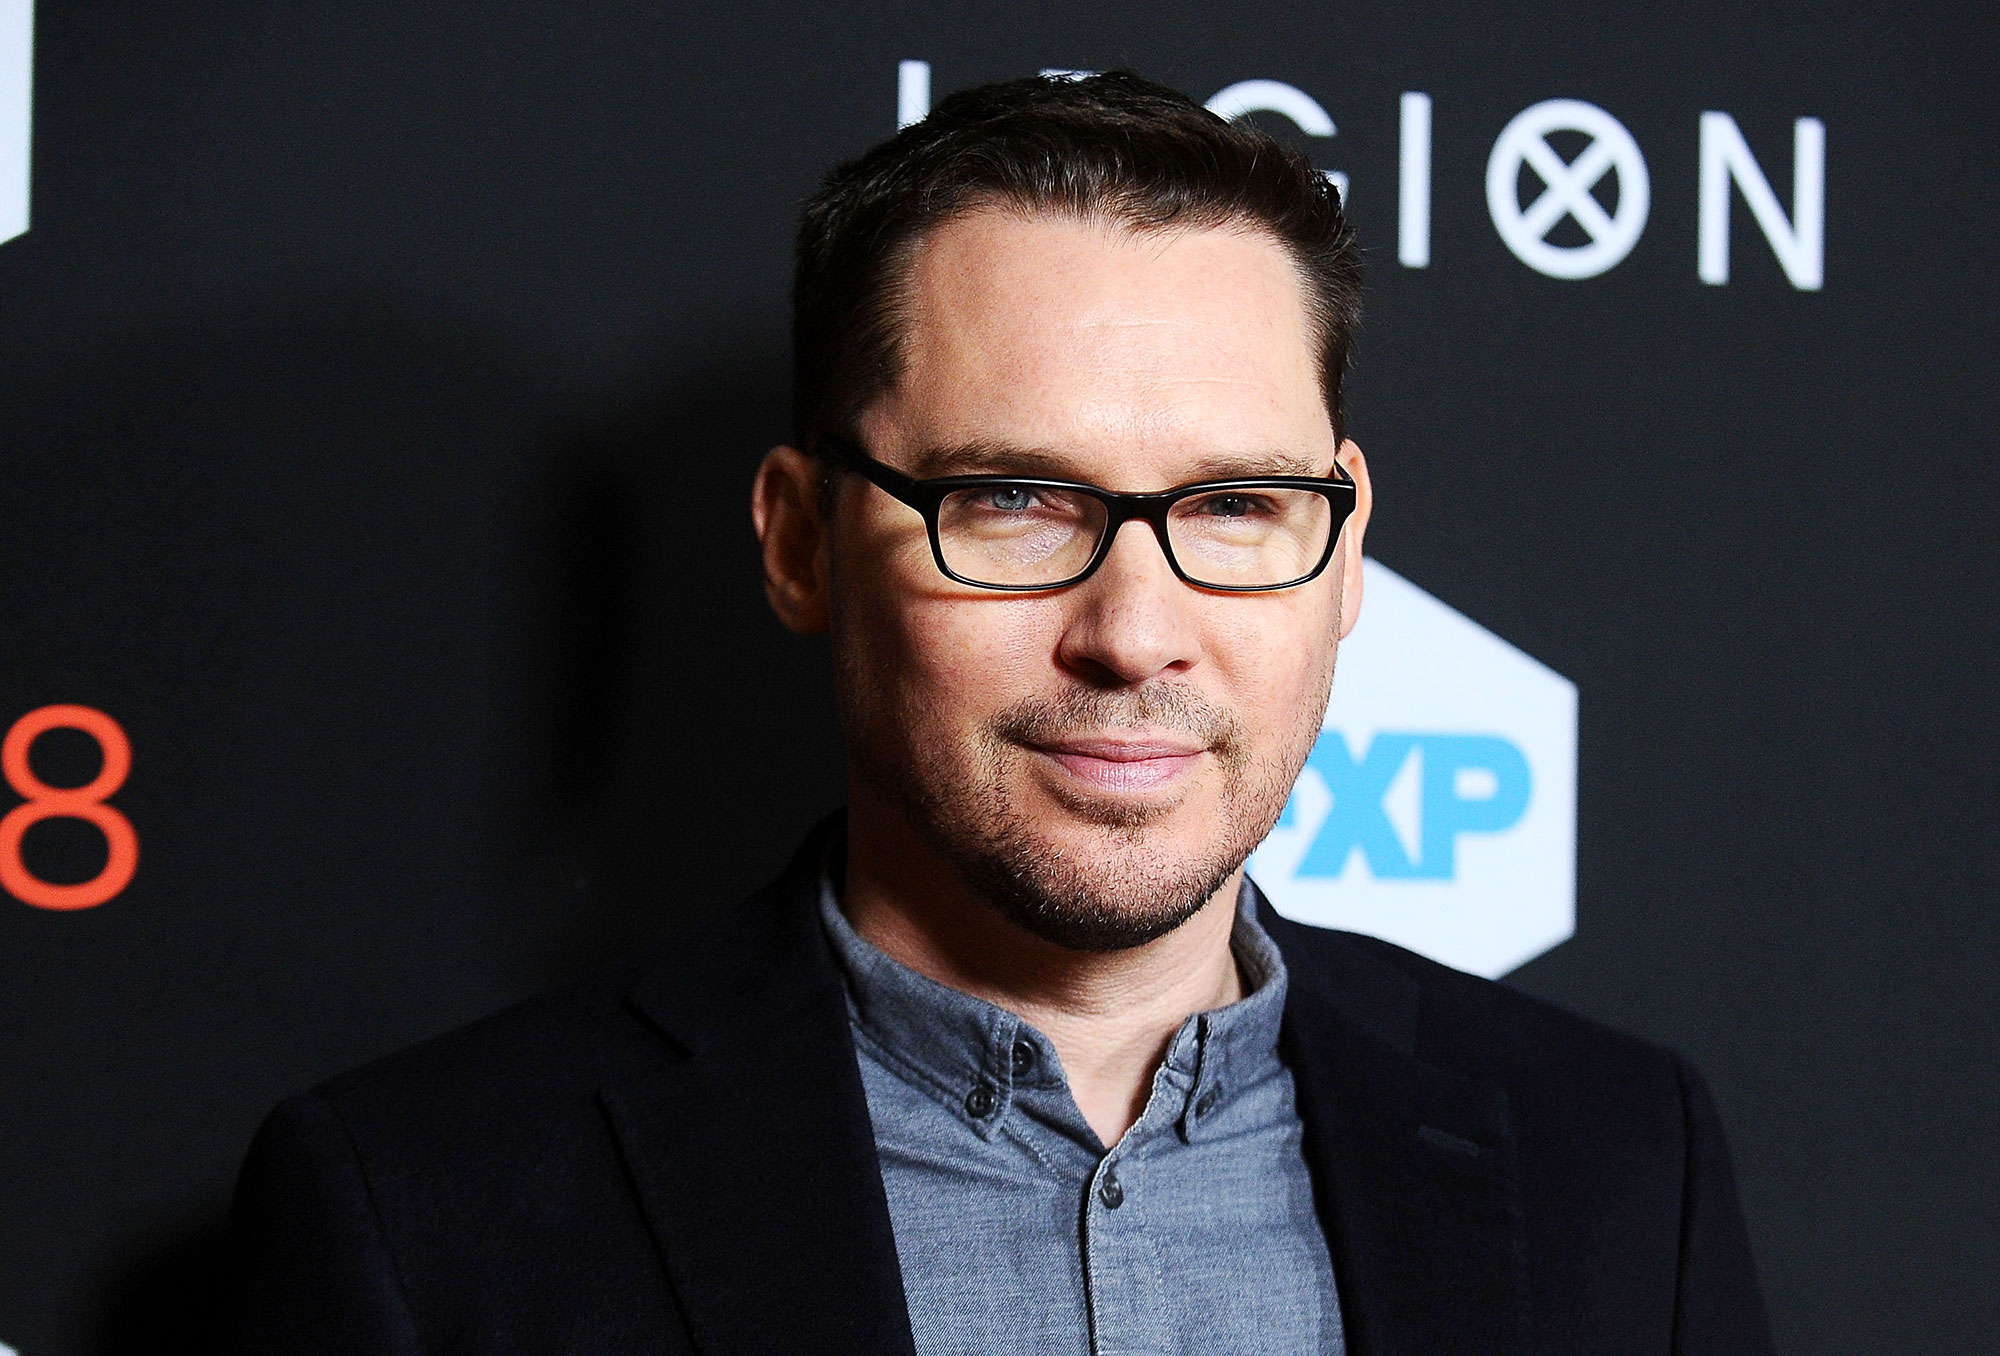 'Bohemian Rhapsody' Director Bryan Singer Accused of Sexually Assaulting Multiple Underage Boys